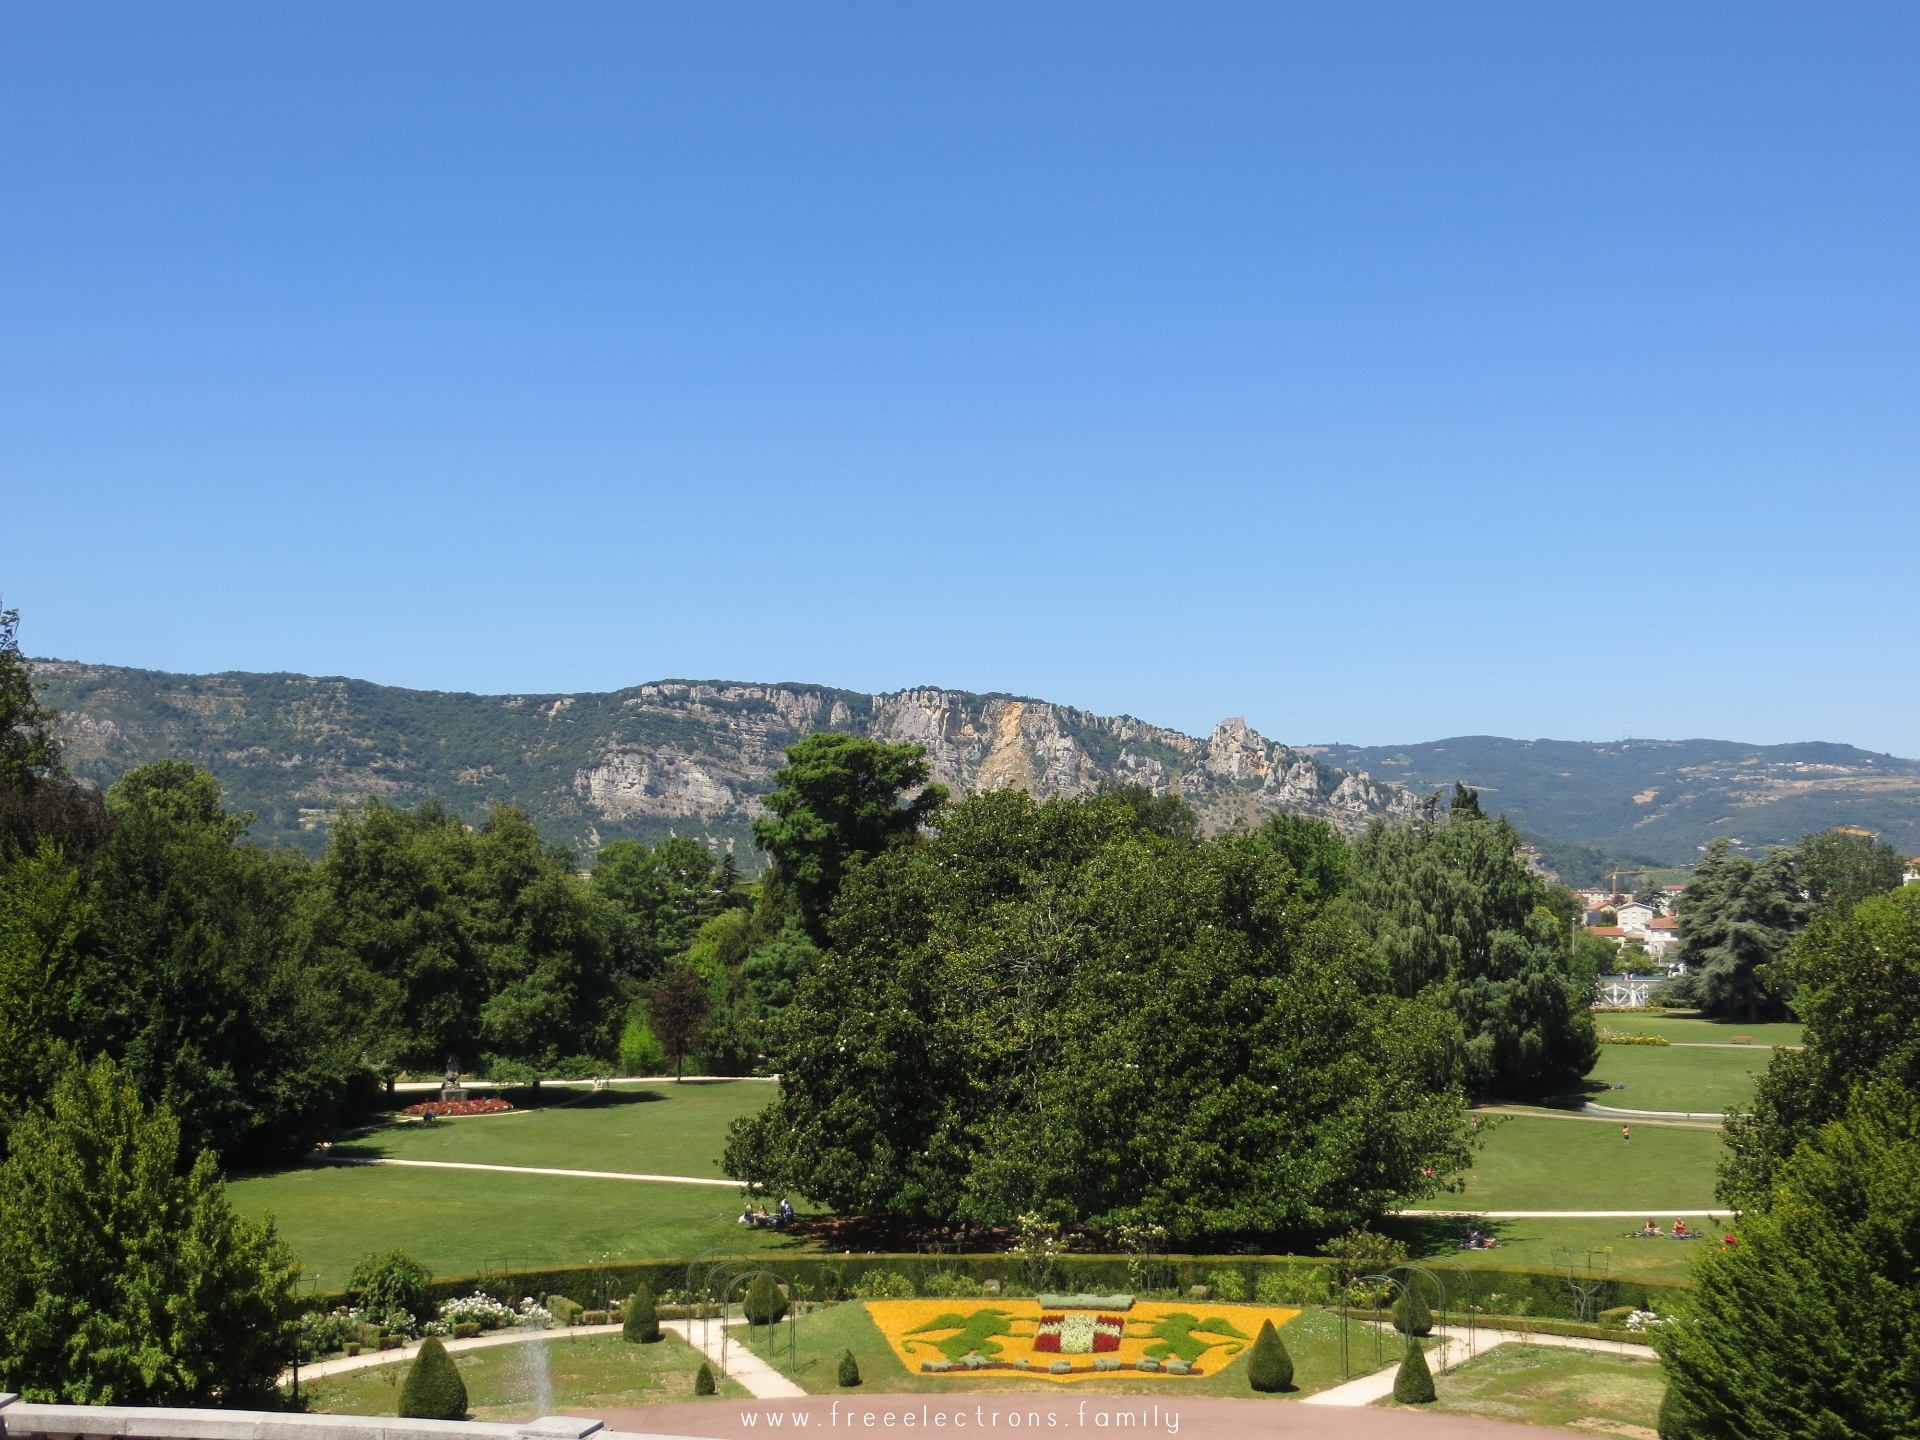 Entrance to Parc Jouvet with a view of the rocky slopes of a nearby mountain, under clear blue summer sky.  #FreeElectrons.Family - camping road trip Europe, Valence.